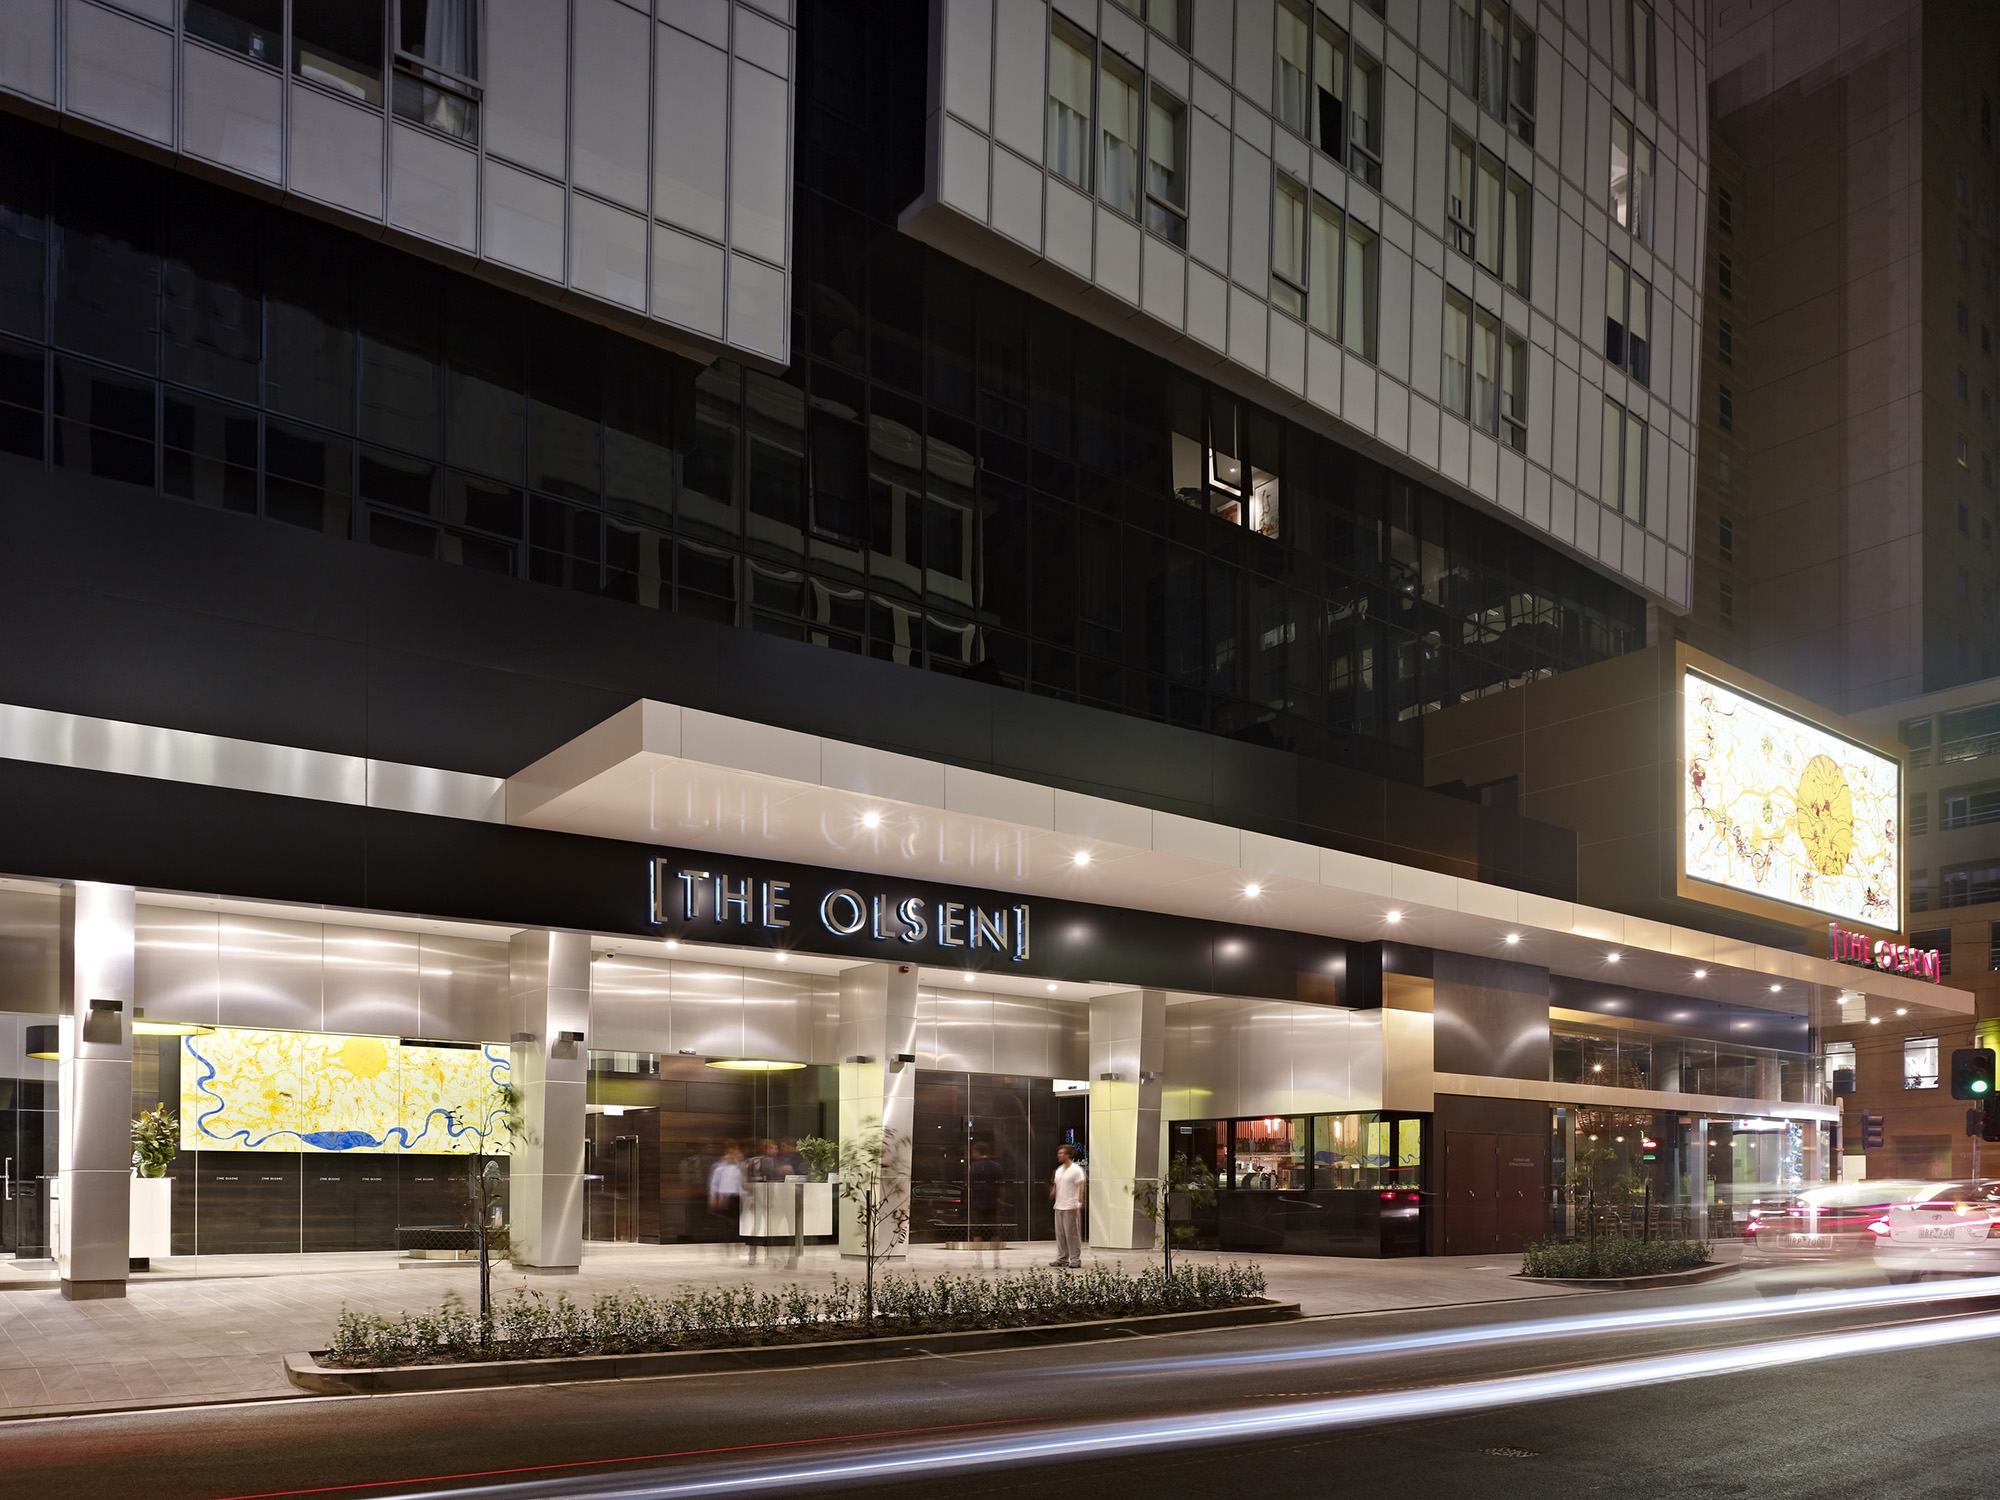 Olsen Hotel Rothelowman Architecture project